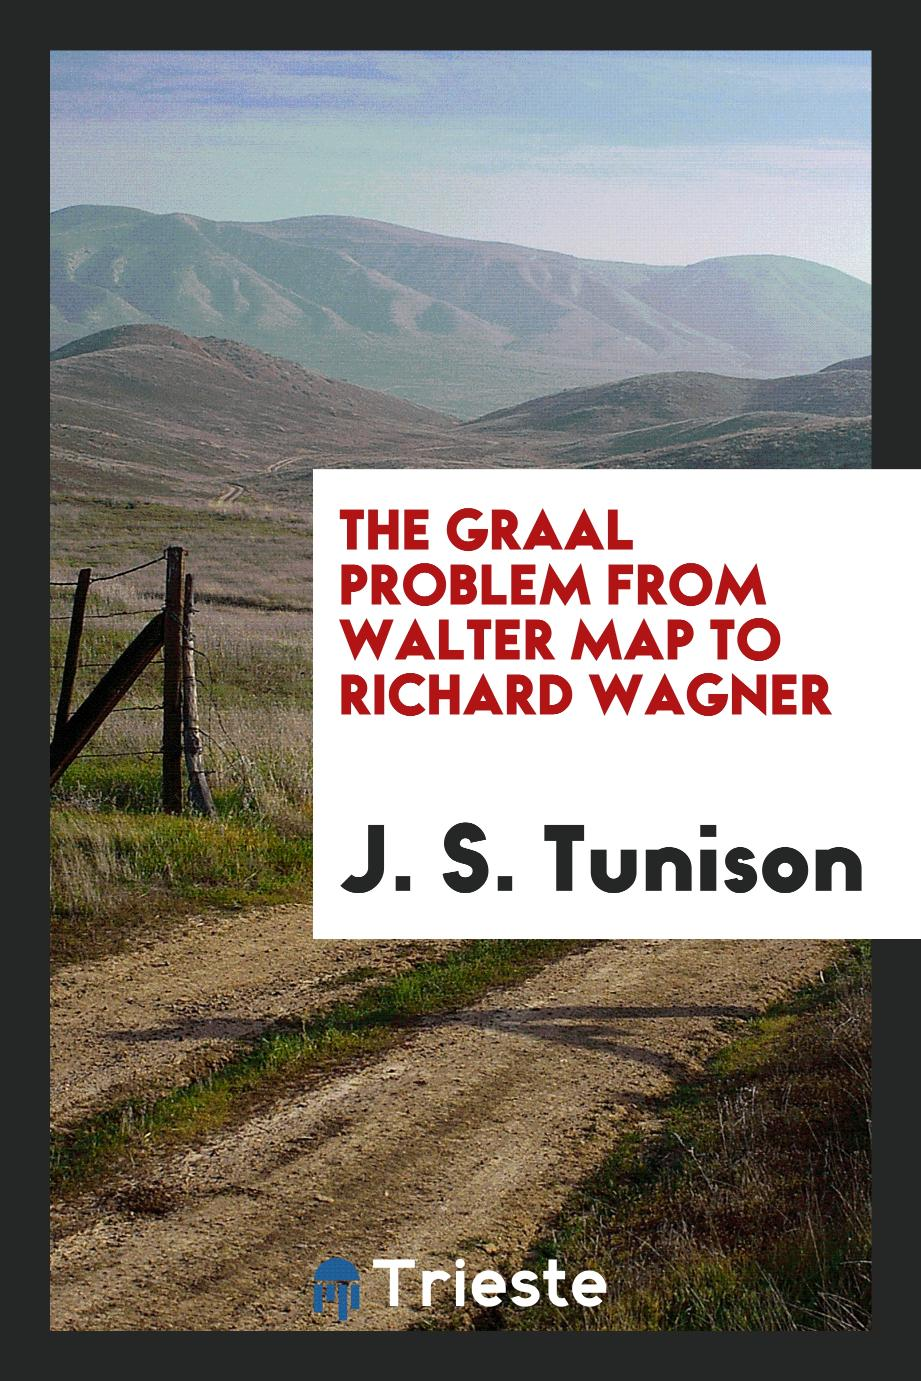 The Graal Problem from Walter Map to Richard Wagner